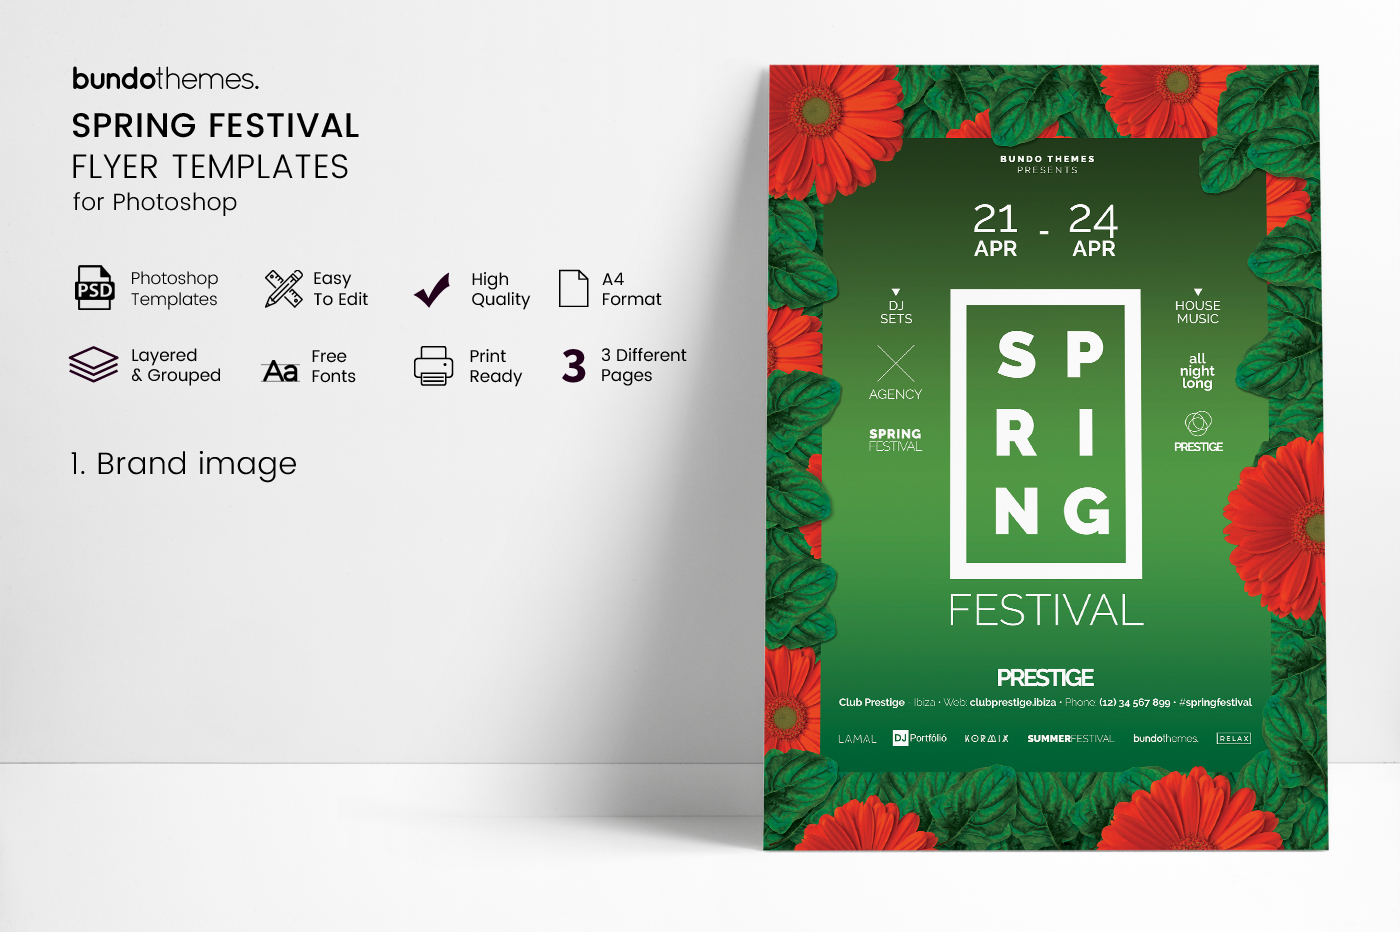 Spring Festival Flyer Template example image 3